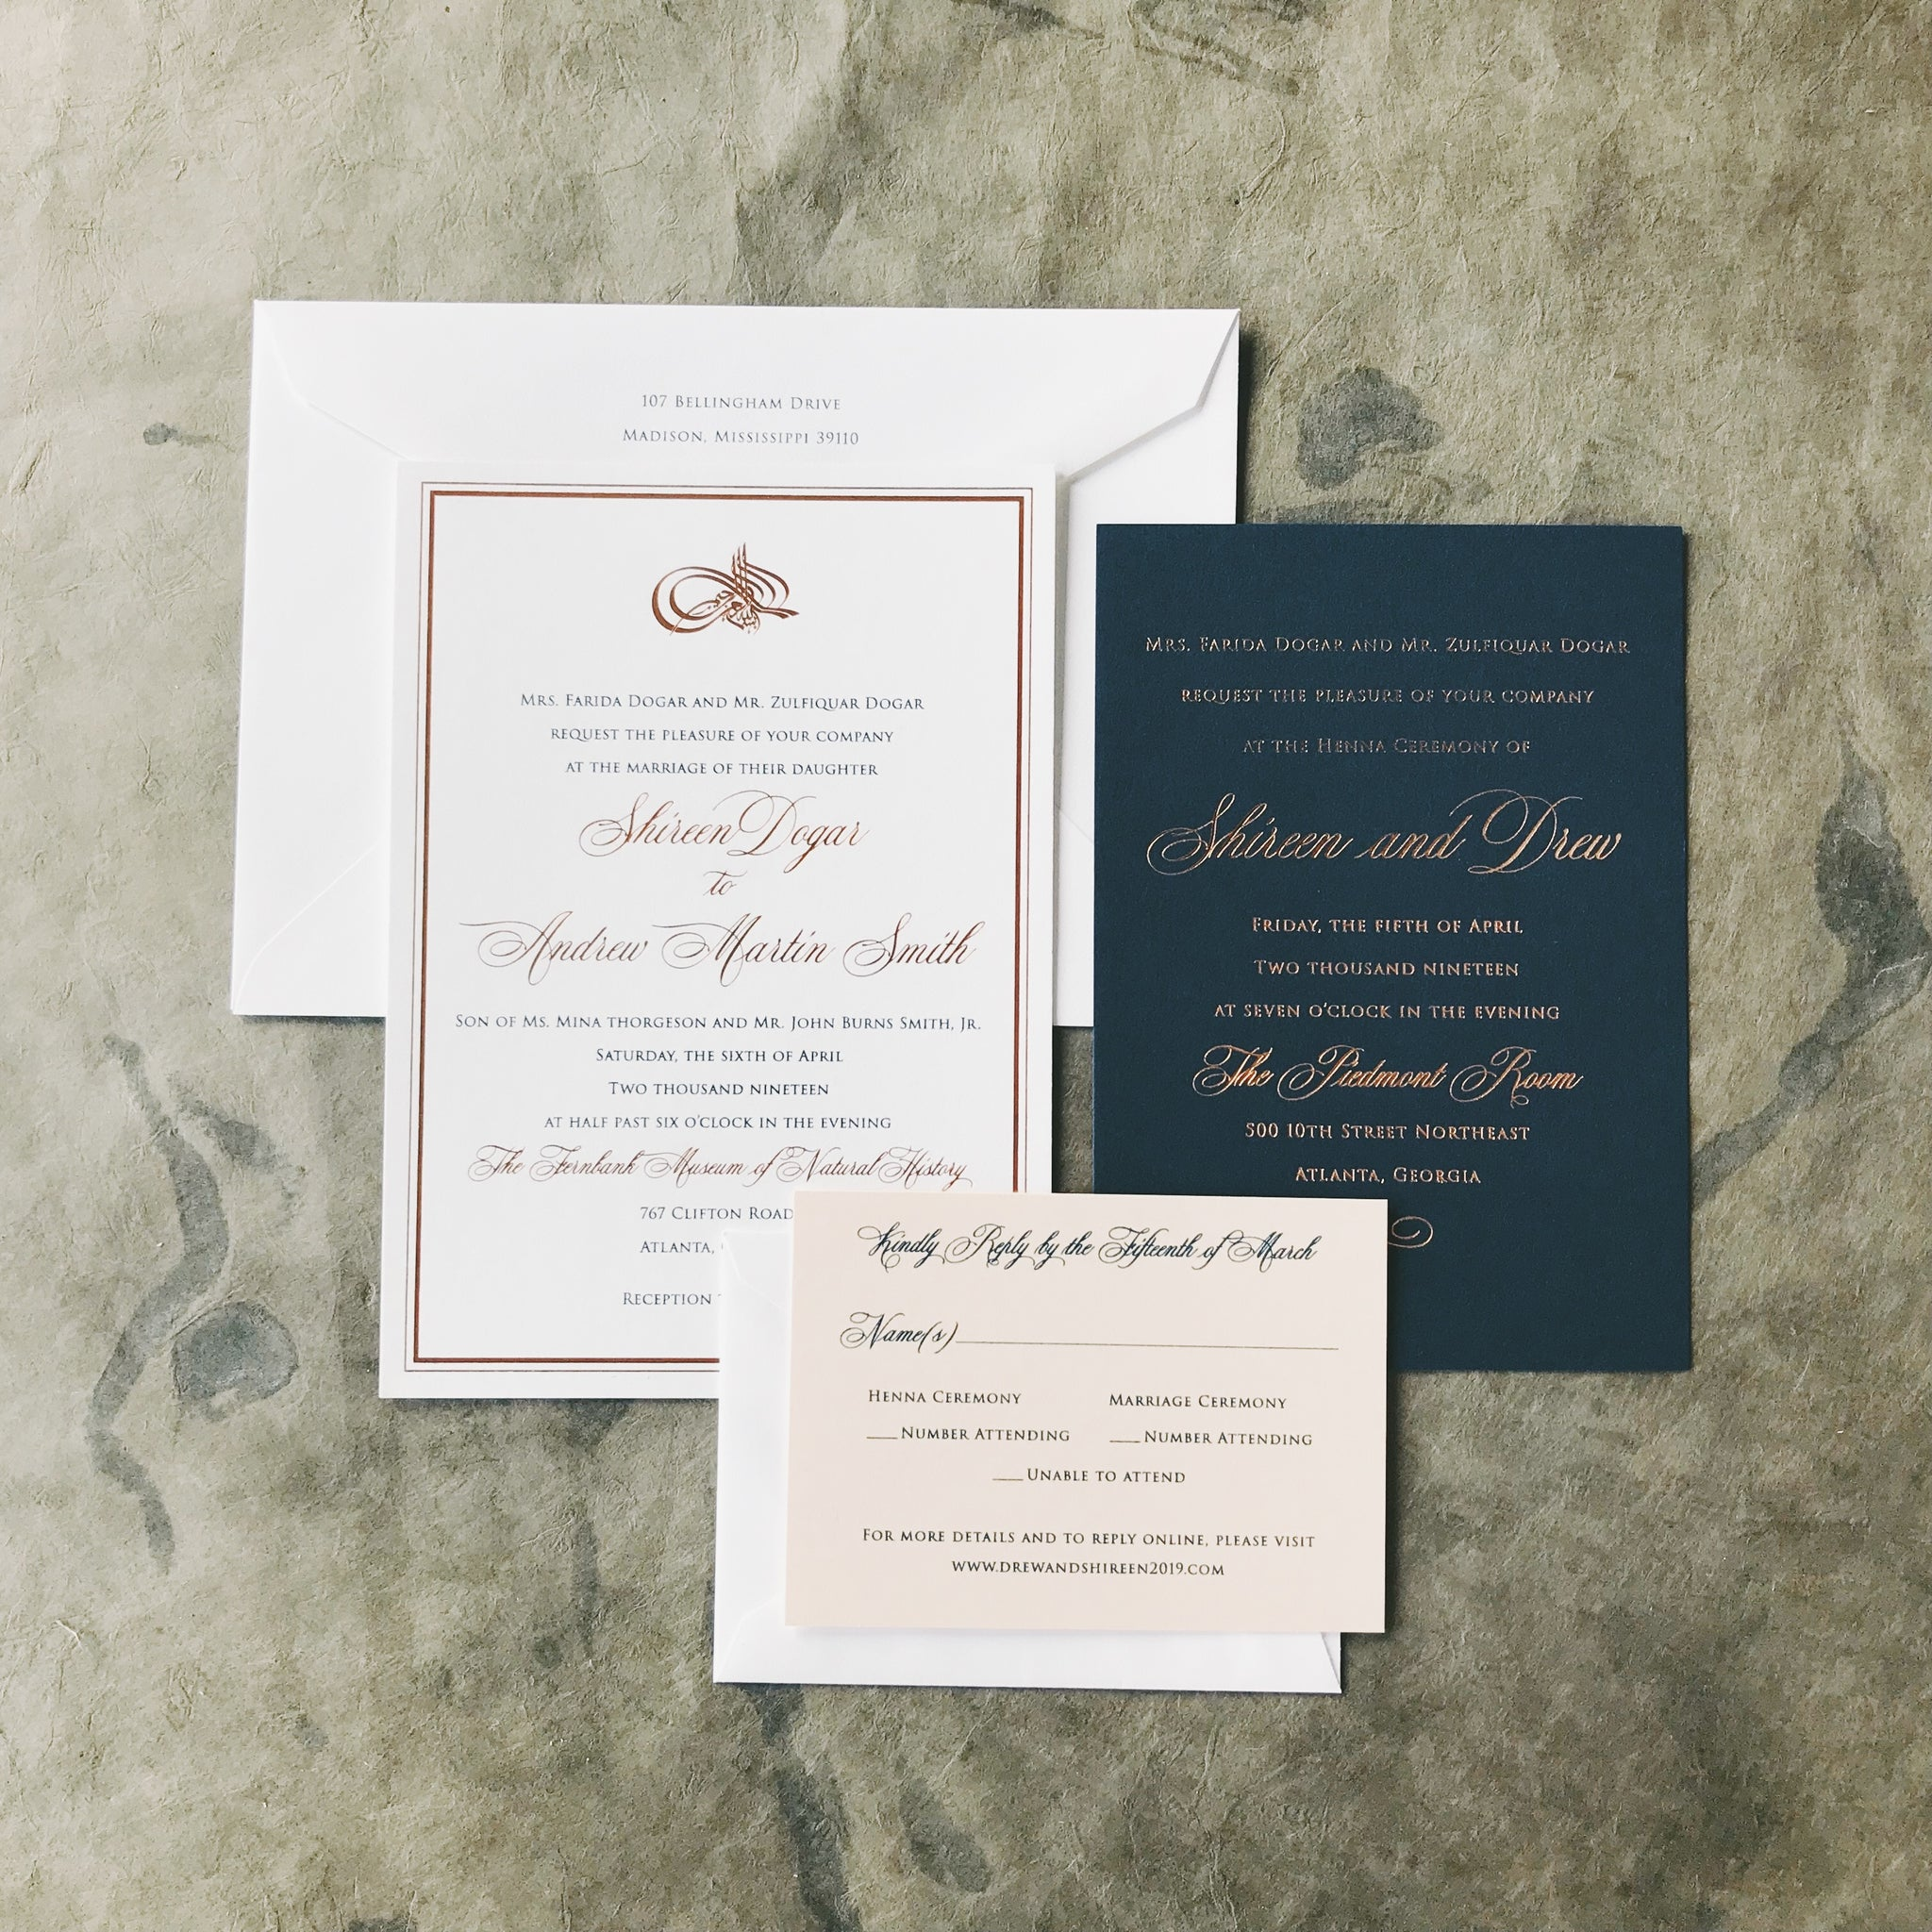 Dogar Wedding Invitation - Deposit Listing